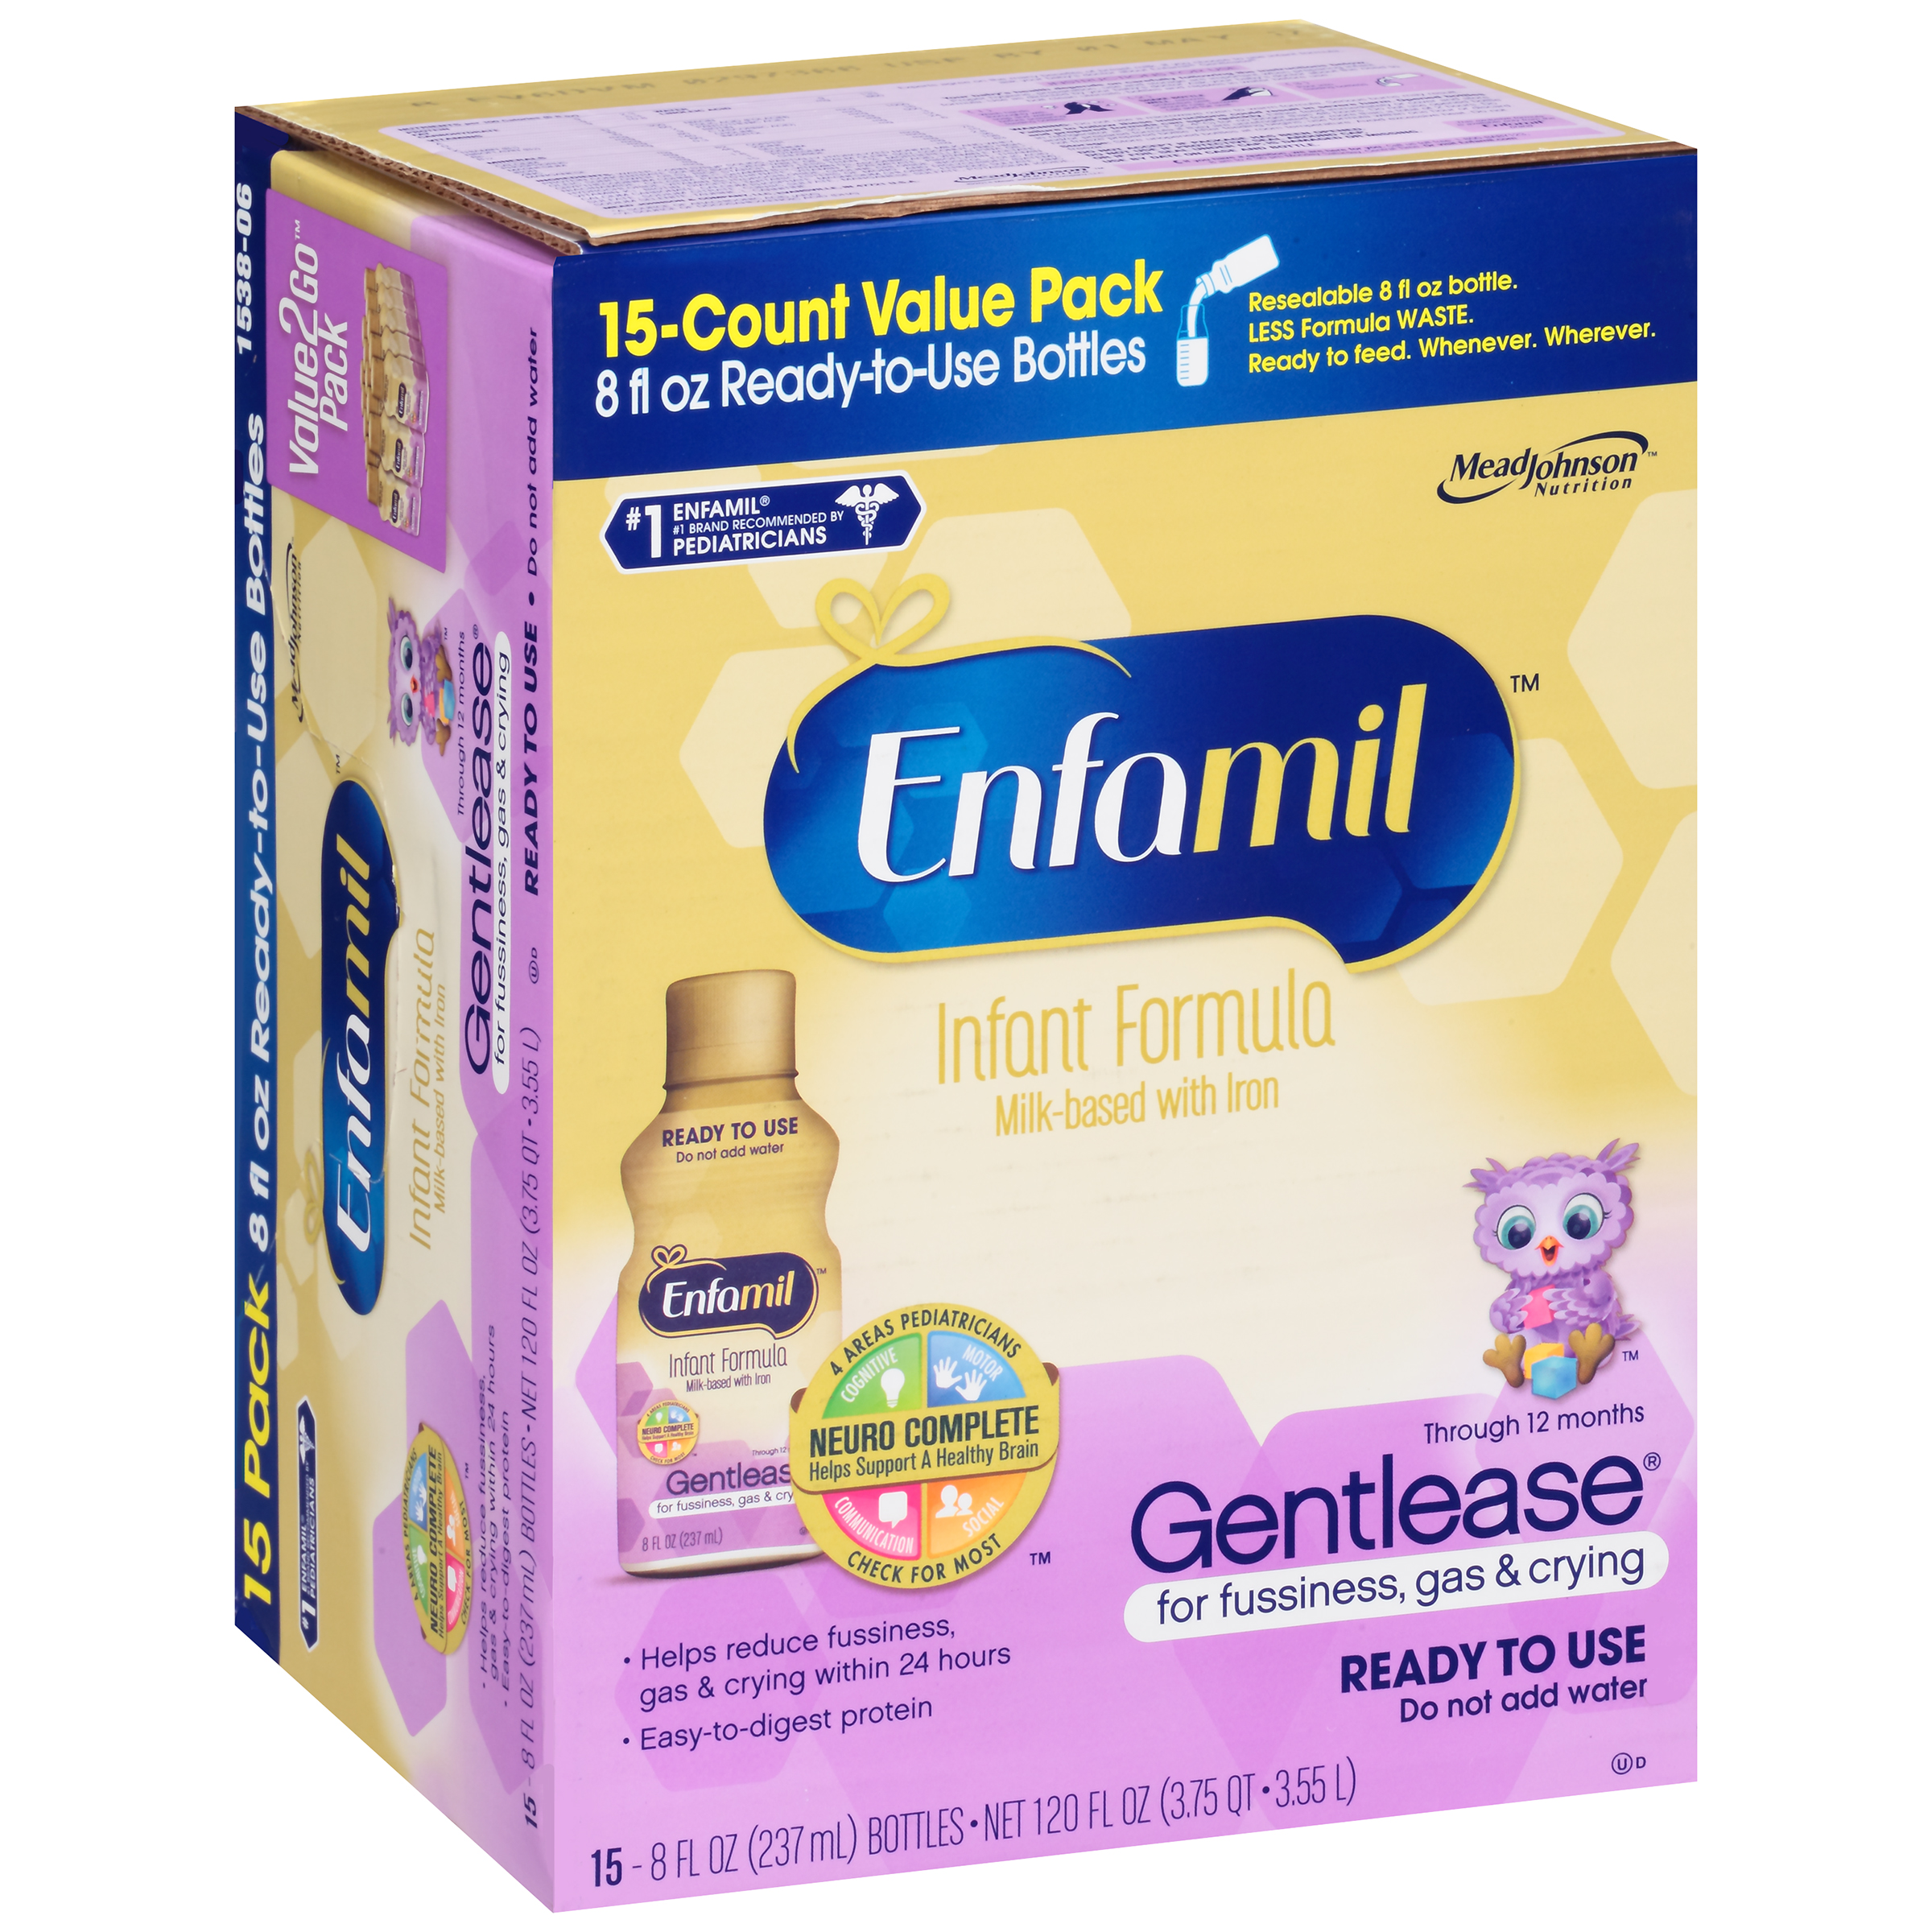 Enfamil��� Gentlease�� Ready to Use Infant Formula 15-8 fl. oz. Bottles